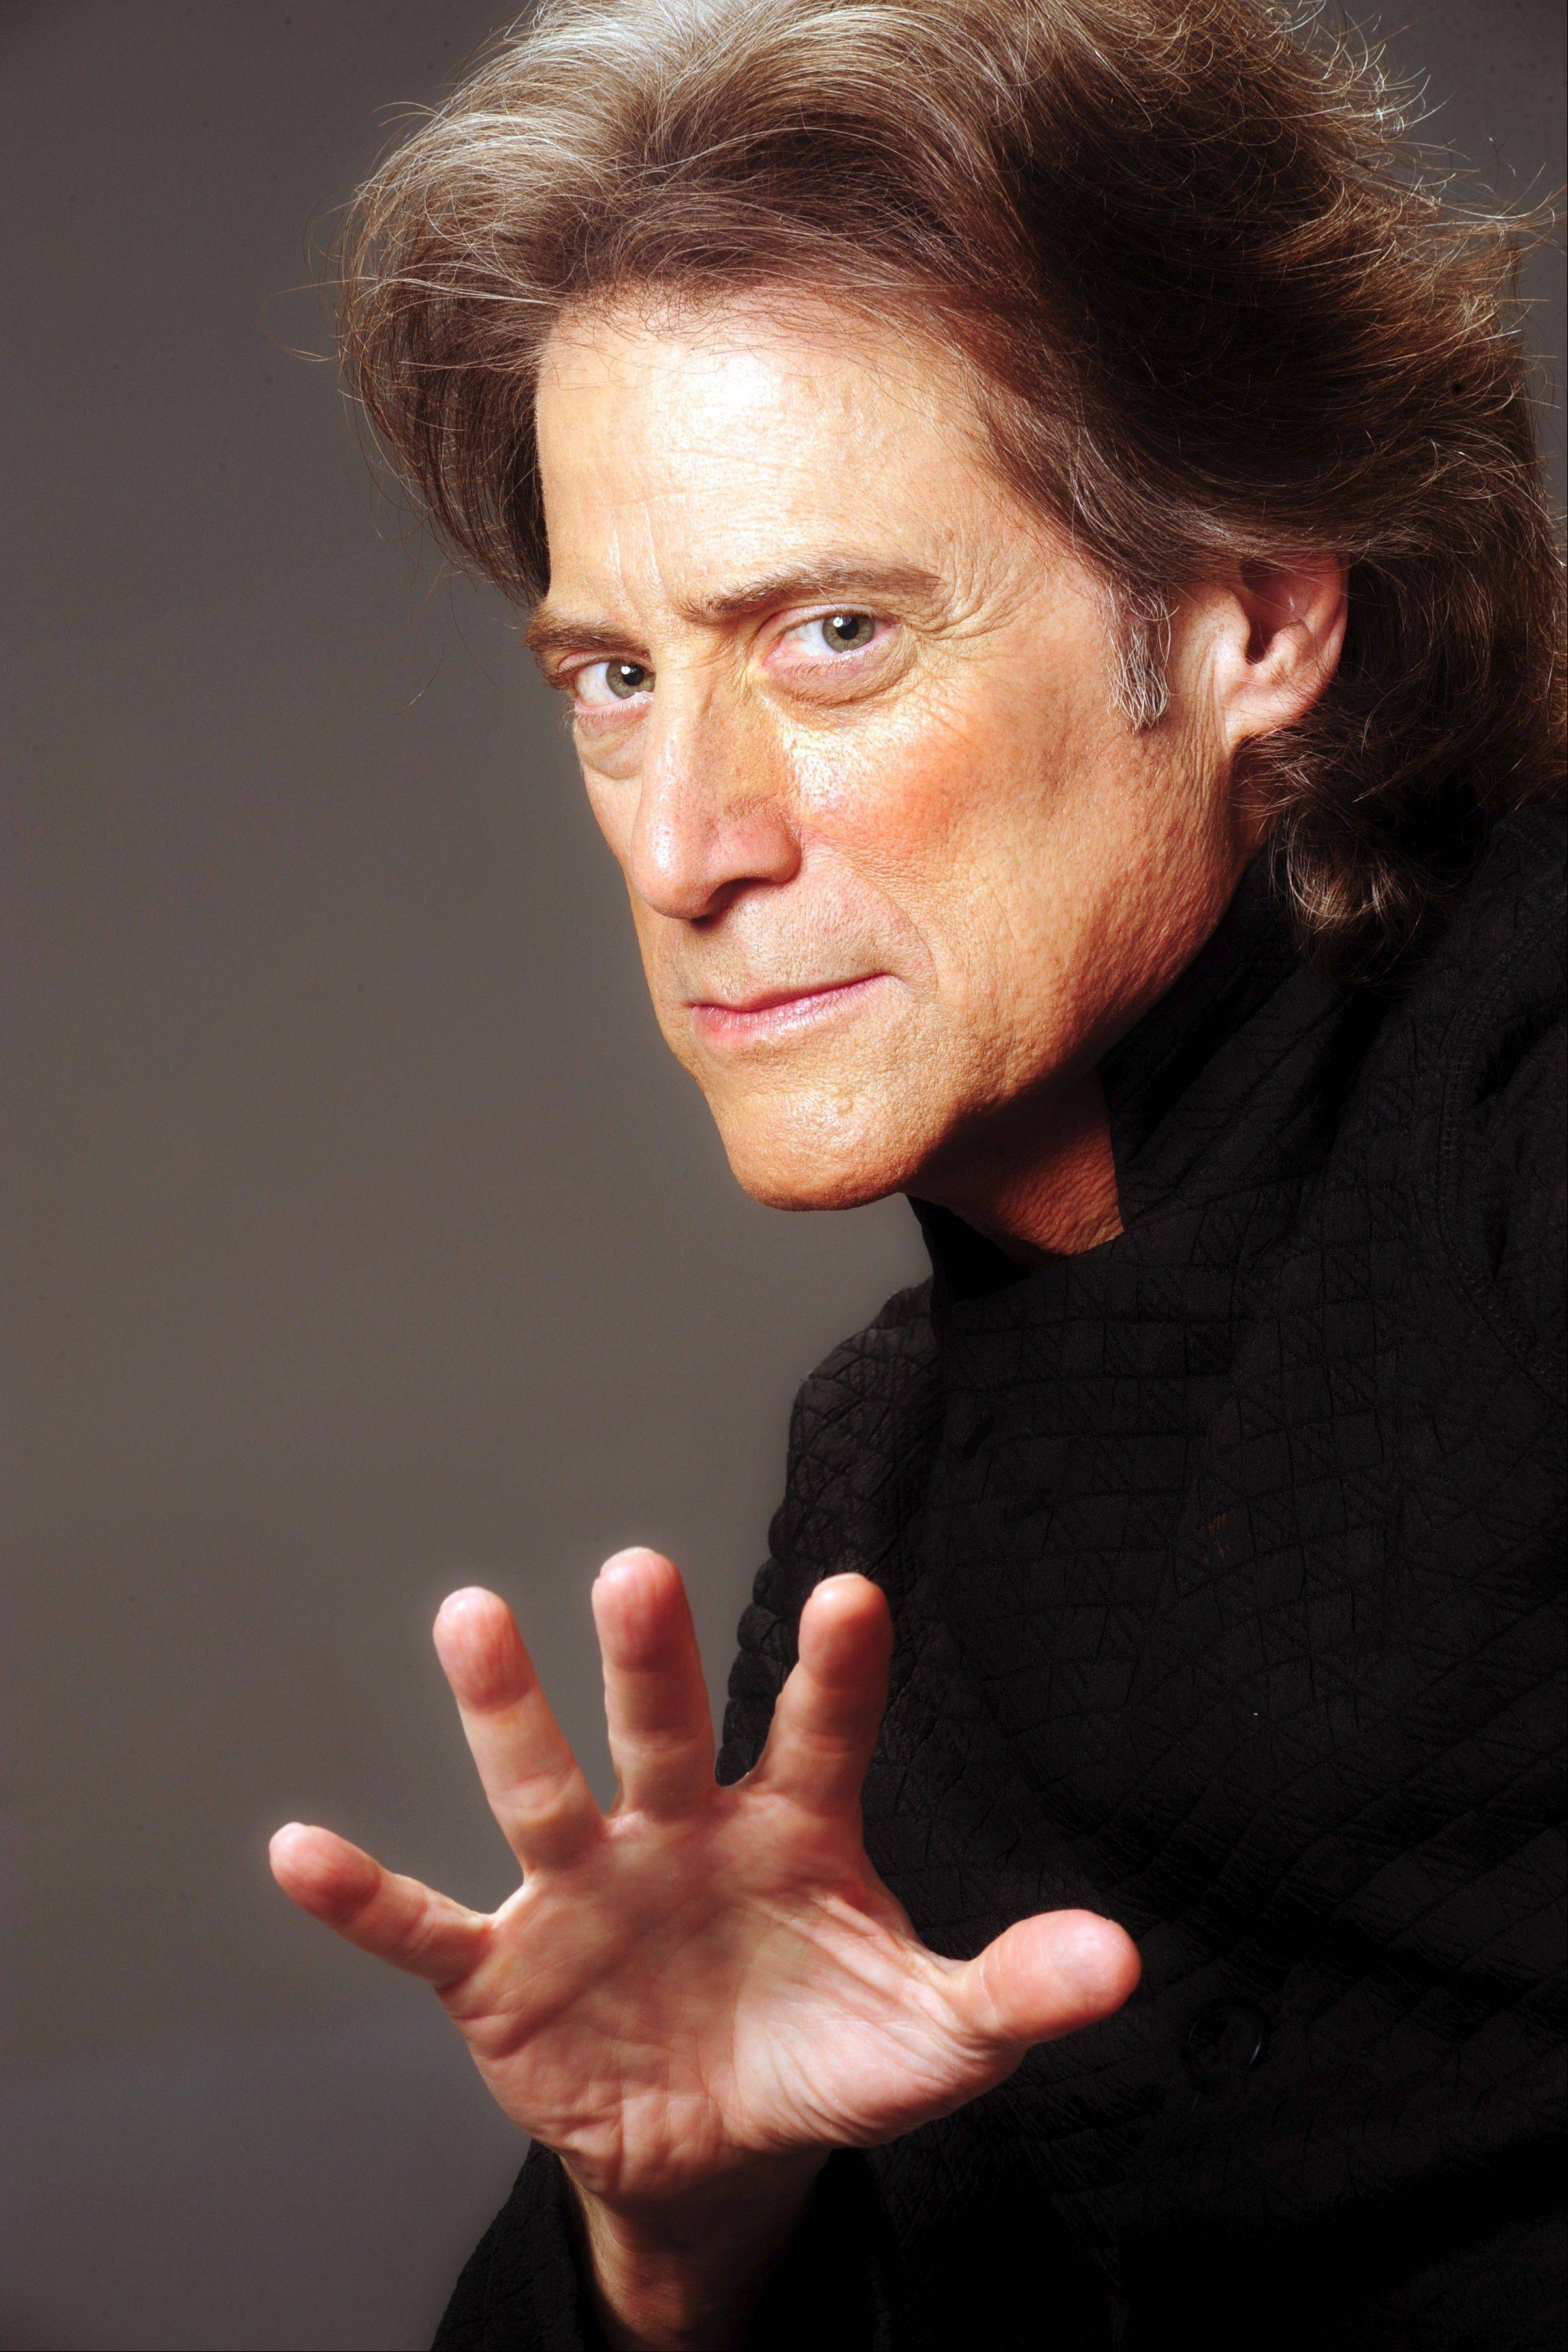 Richard Lewis will headline Zanies in Chicago and Rosemont.